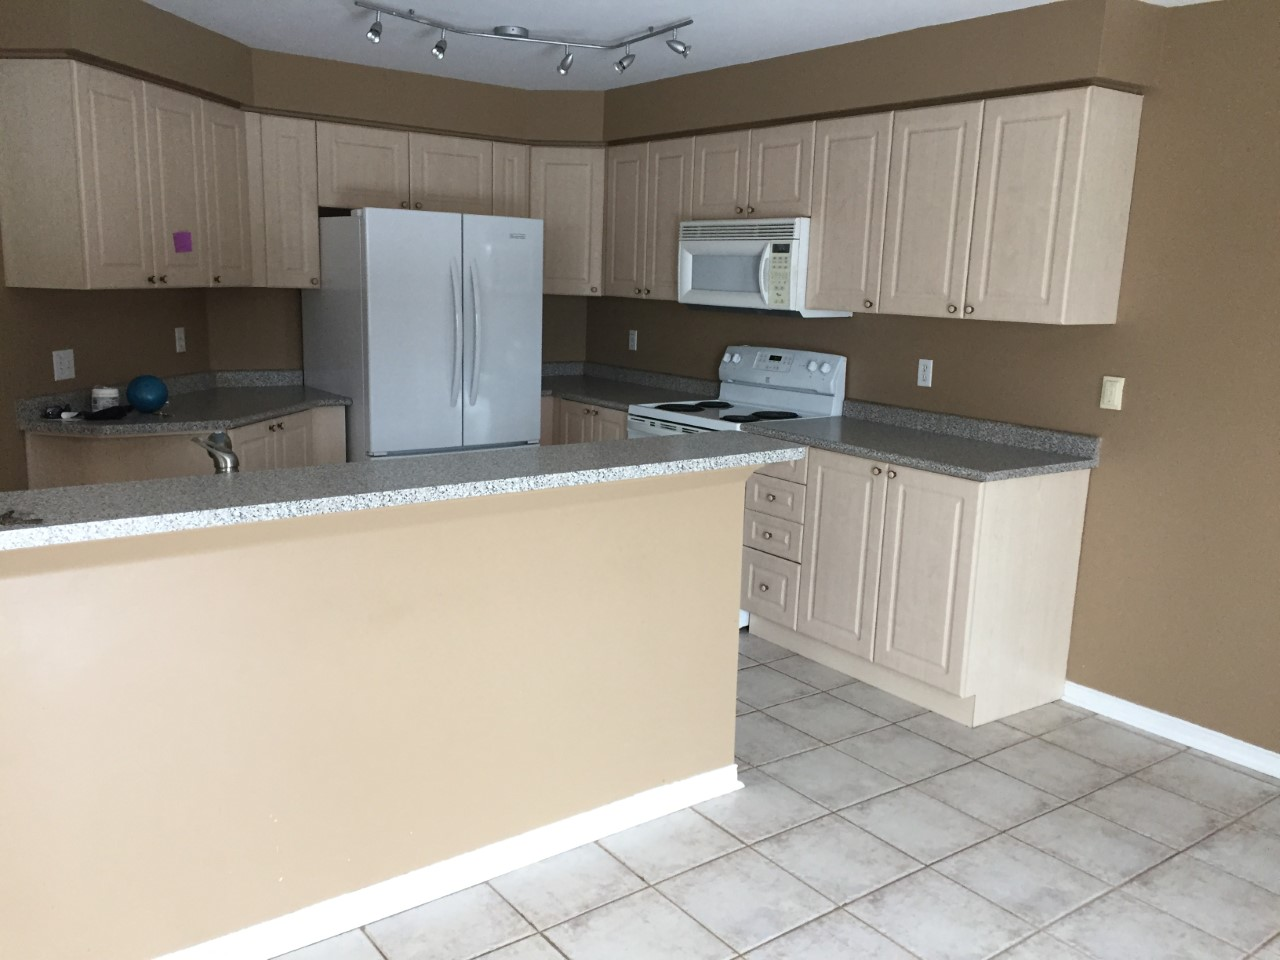 Apartment for rent at 11 Medland Ave, Whitby, ON. This is the kitchen with tile floor.